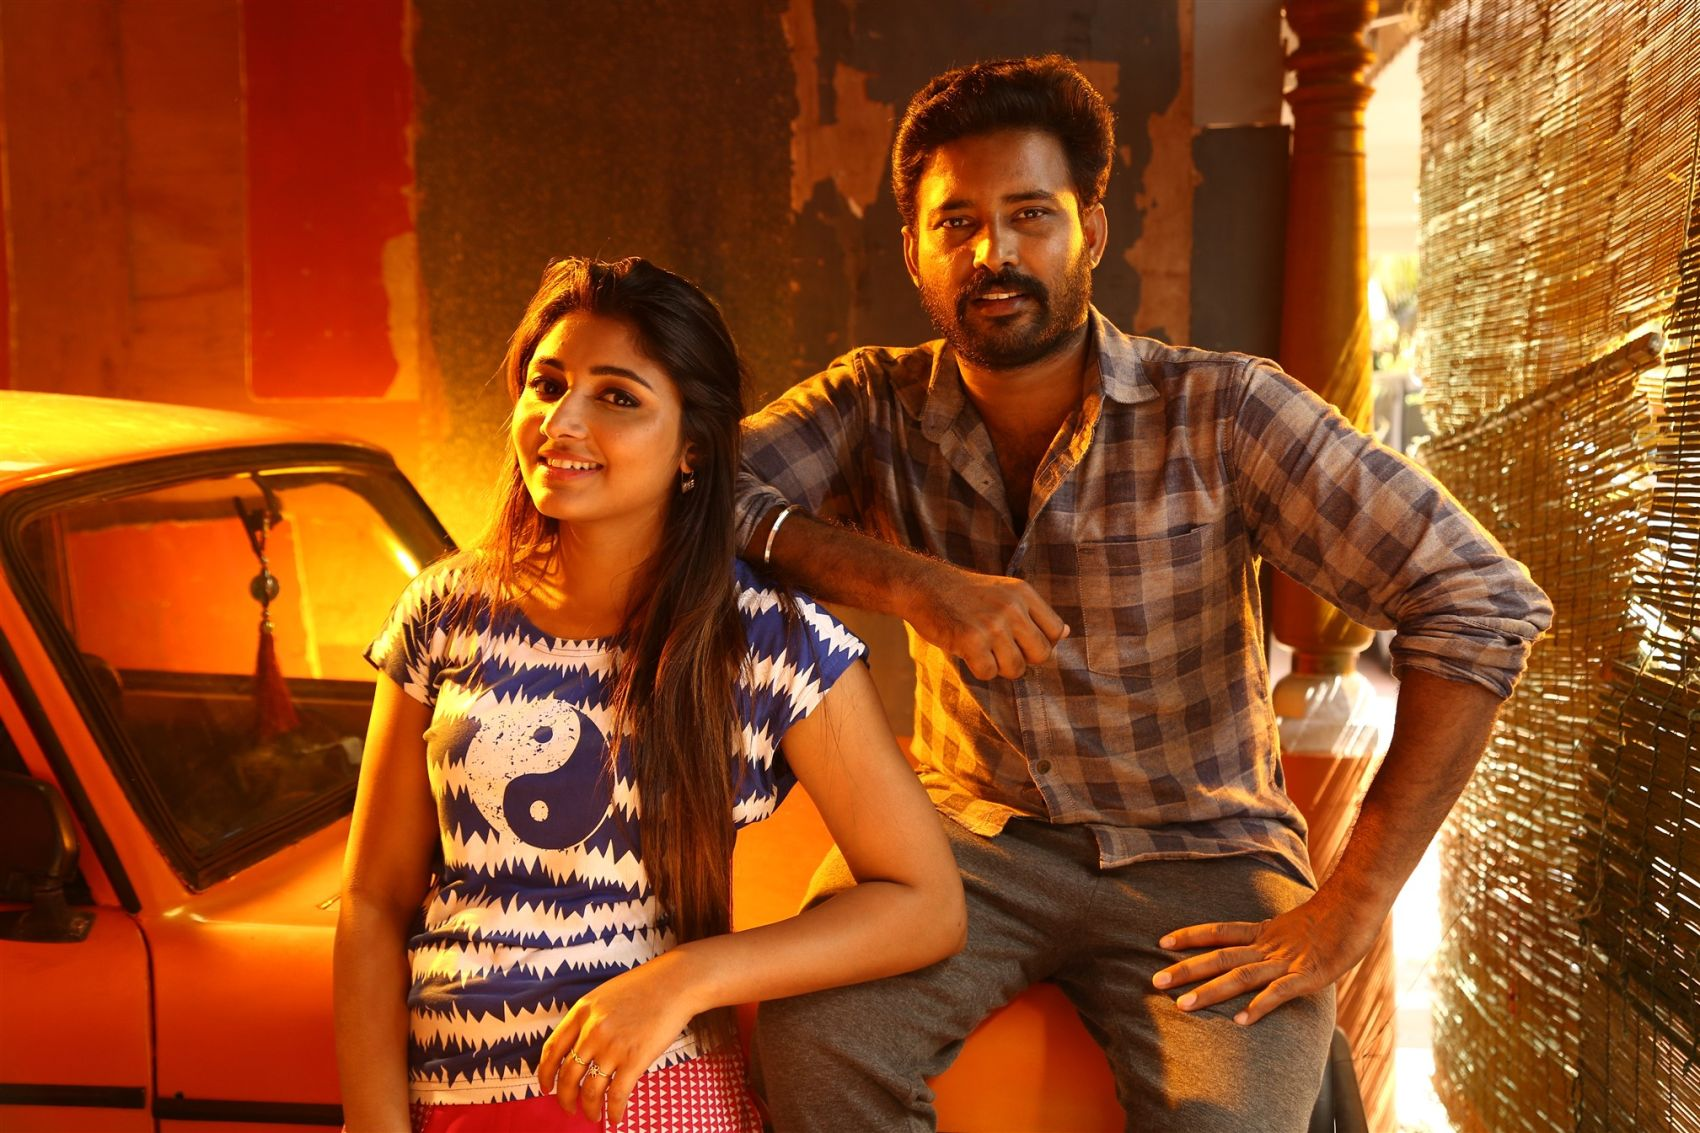 Orey Oru Caru Song Lyrics